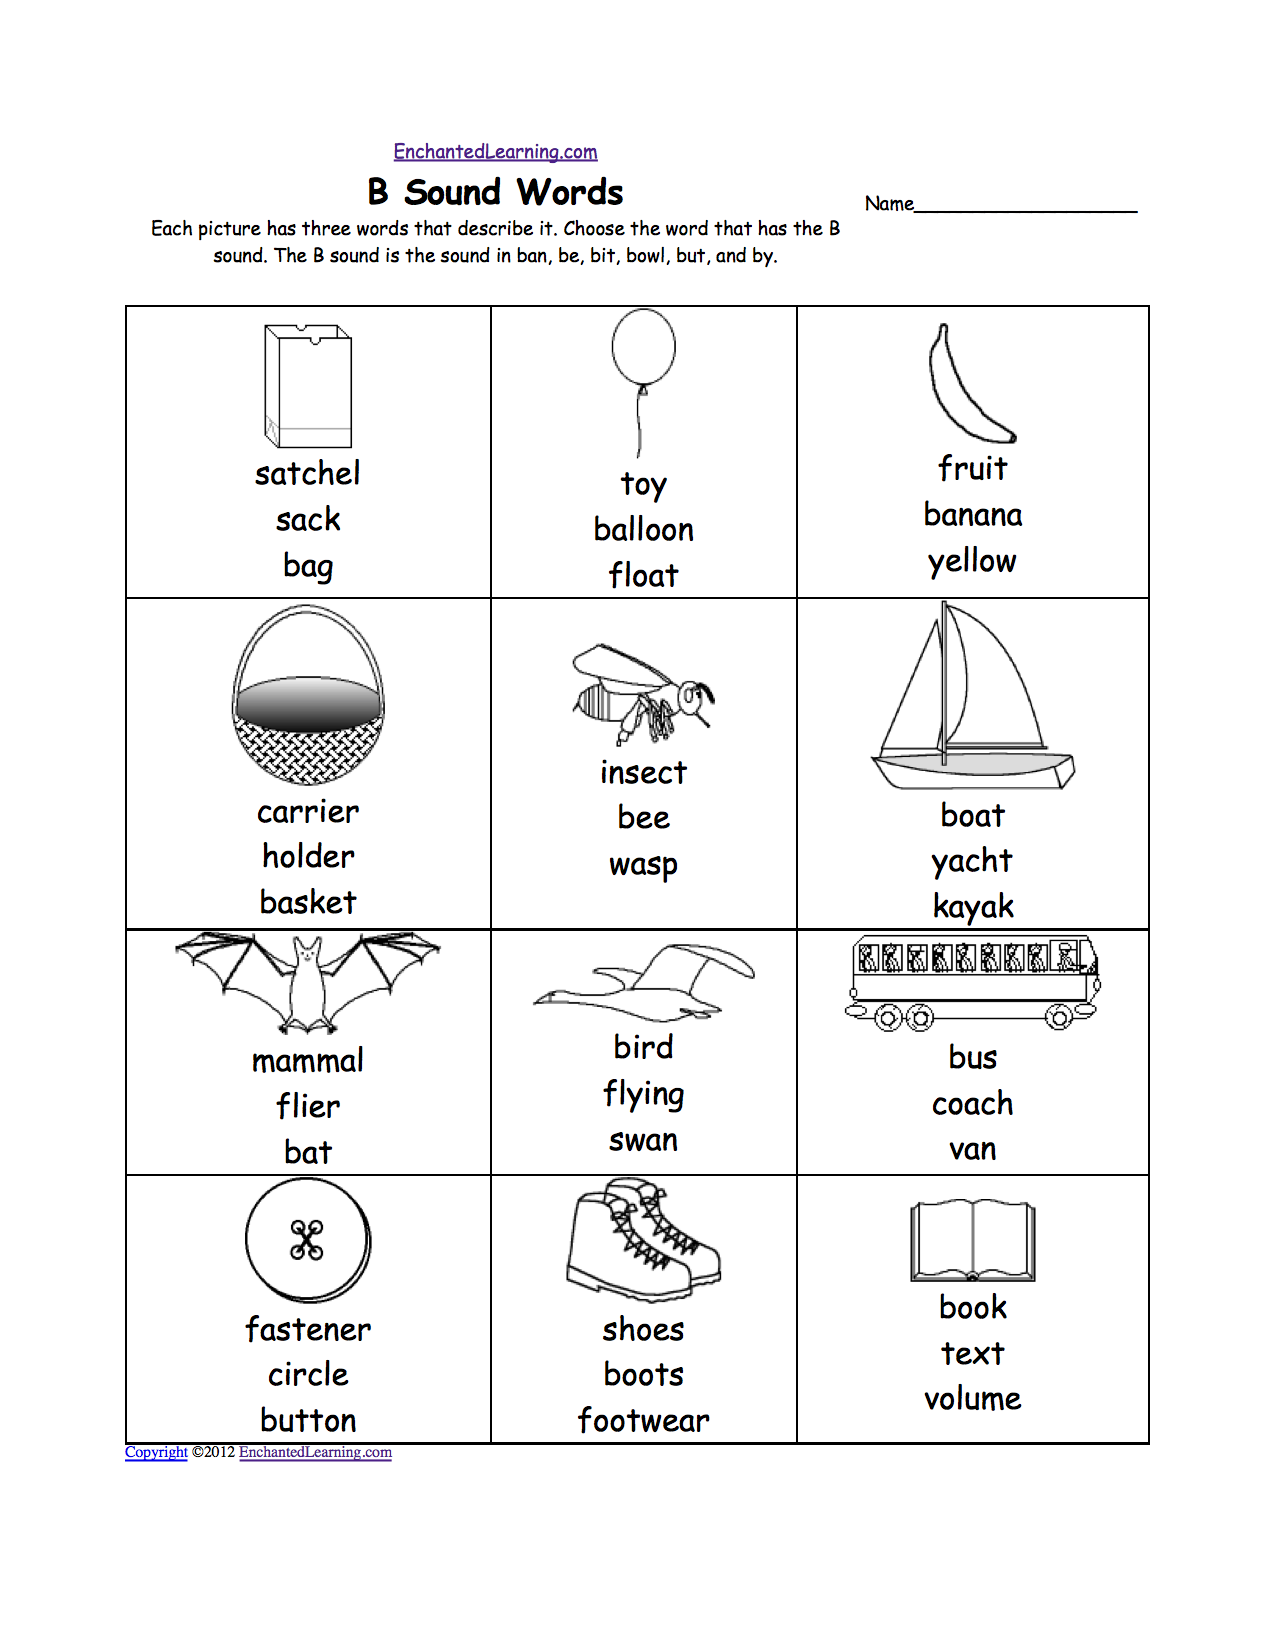 Weirdmailus  Nice Phonics Worksheets Multiple Choice Worksheets To Print  With Engaging Quotbquot Sound Phonics Worksheet Multiple Choice Each Picture Has Three Words That Describe It Choose The Word That Has A Quotbquot Sound The Quotbquot Sound Is The Sound  With Endearing Math Worksheets For Grade  Printable Also  Square Worksheet In Addition Commas Worksheet Ks And Relative Formula Mass Worksheet As Well As Life Skills Worksheets For Teenagers Additionally Worksheets On English From Enchantedlearningcom With Weirdmailus  Engaging Phonics Worksheets Multiple Choice Worksheets To Print  With Endearing Quotbquot Sound Phonics Worksheet Multiple Choice Each Picture Has Three Words That Describe It Choose The Word That Has A Quotbquot Sound The Quotbquot Sound Is The Sound  And Nice Math Worksheets For Grade  Printable Also  Square Worksheet In Addition Commas Worksheet Ks From Enchantedlearningcom